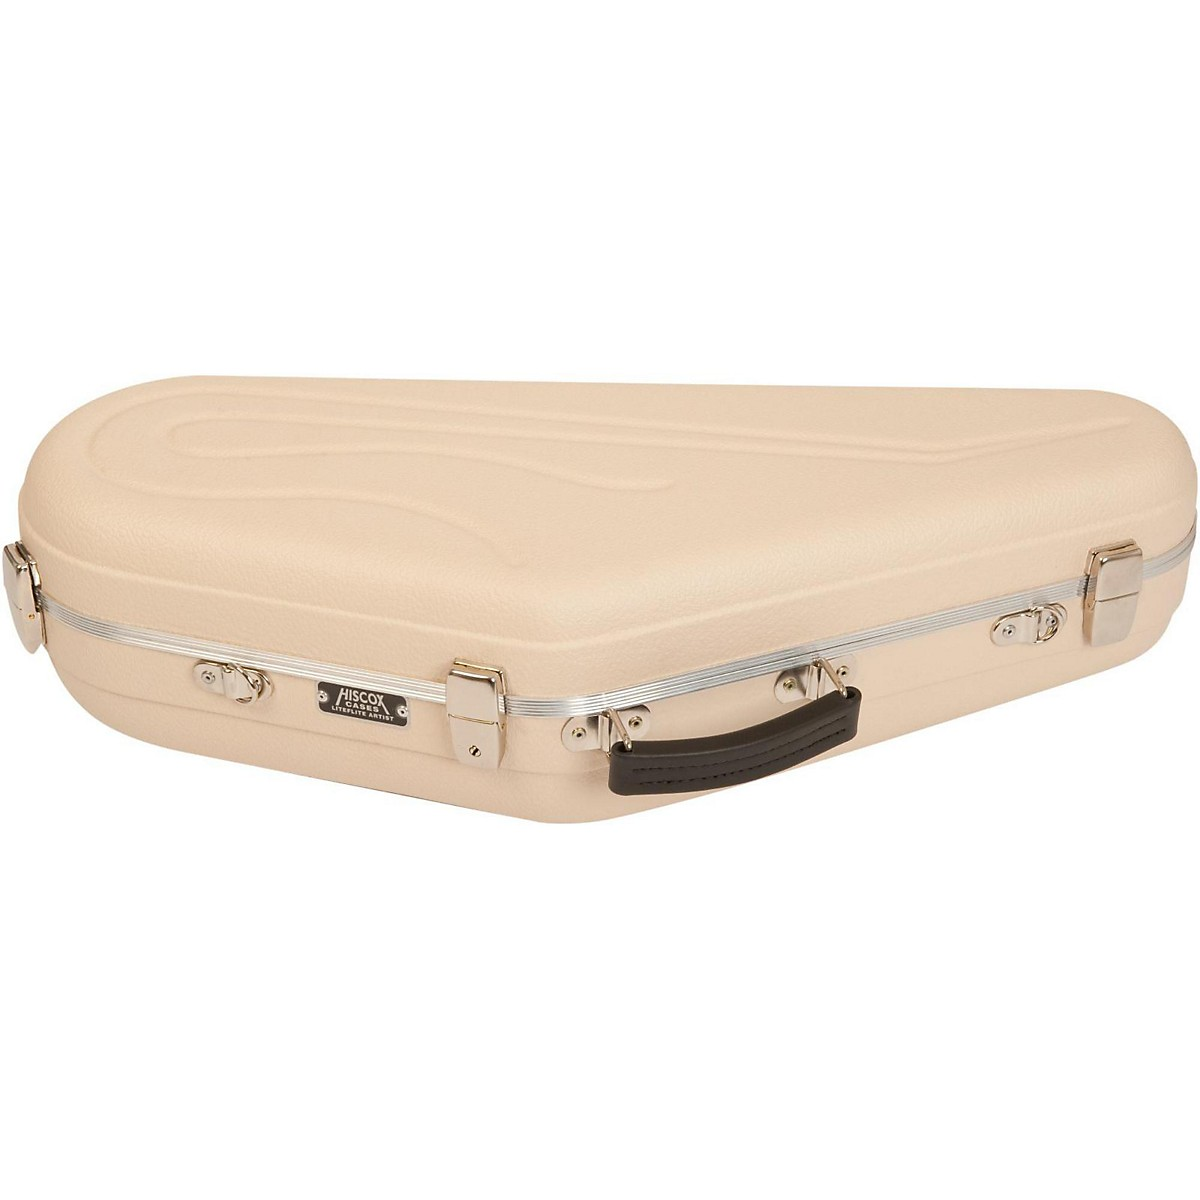 Hiscox Cases Artist Series Alto Saxophone Case